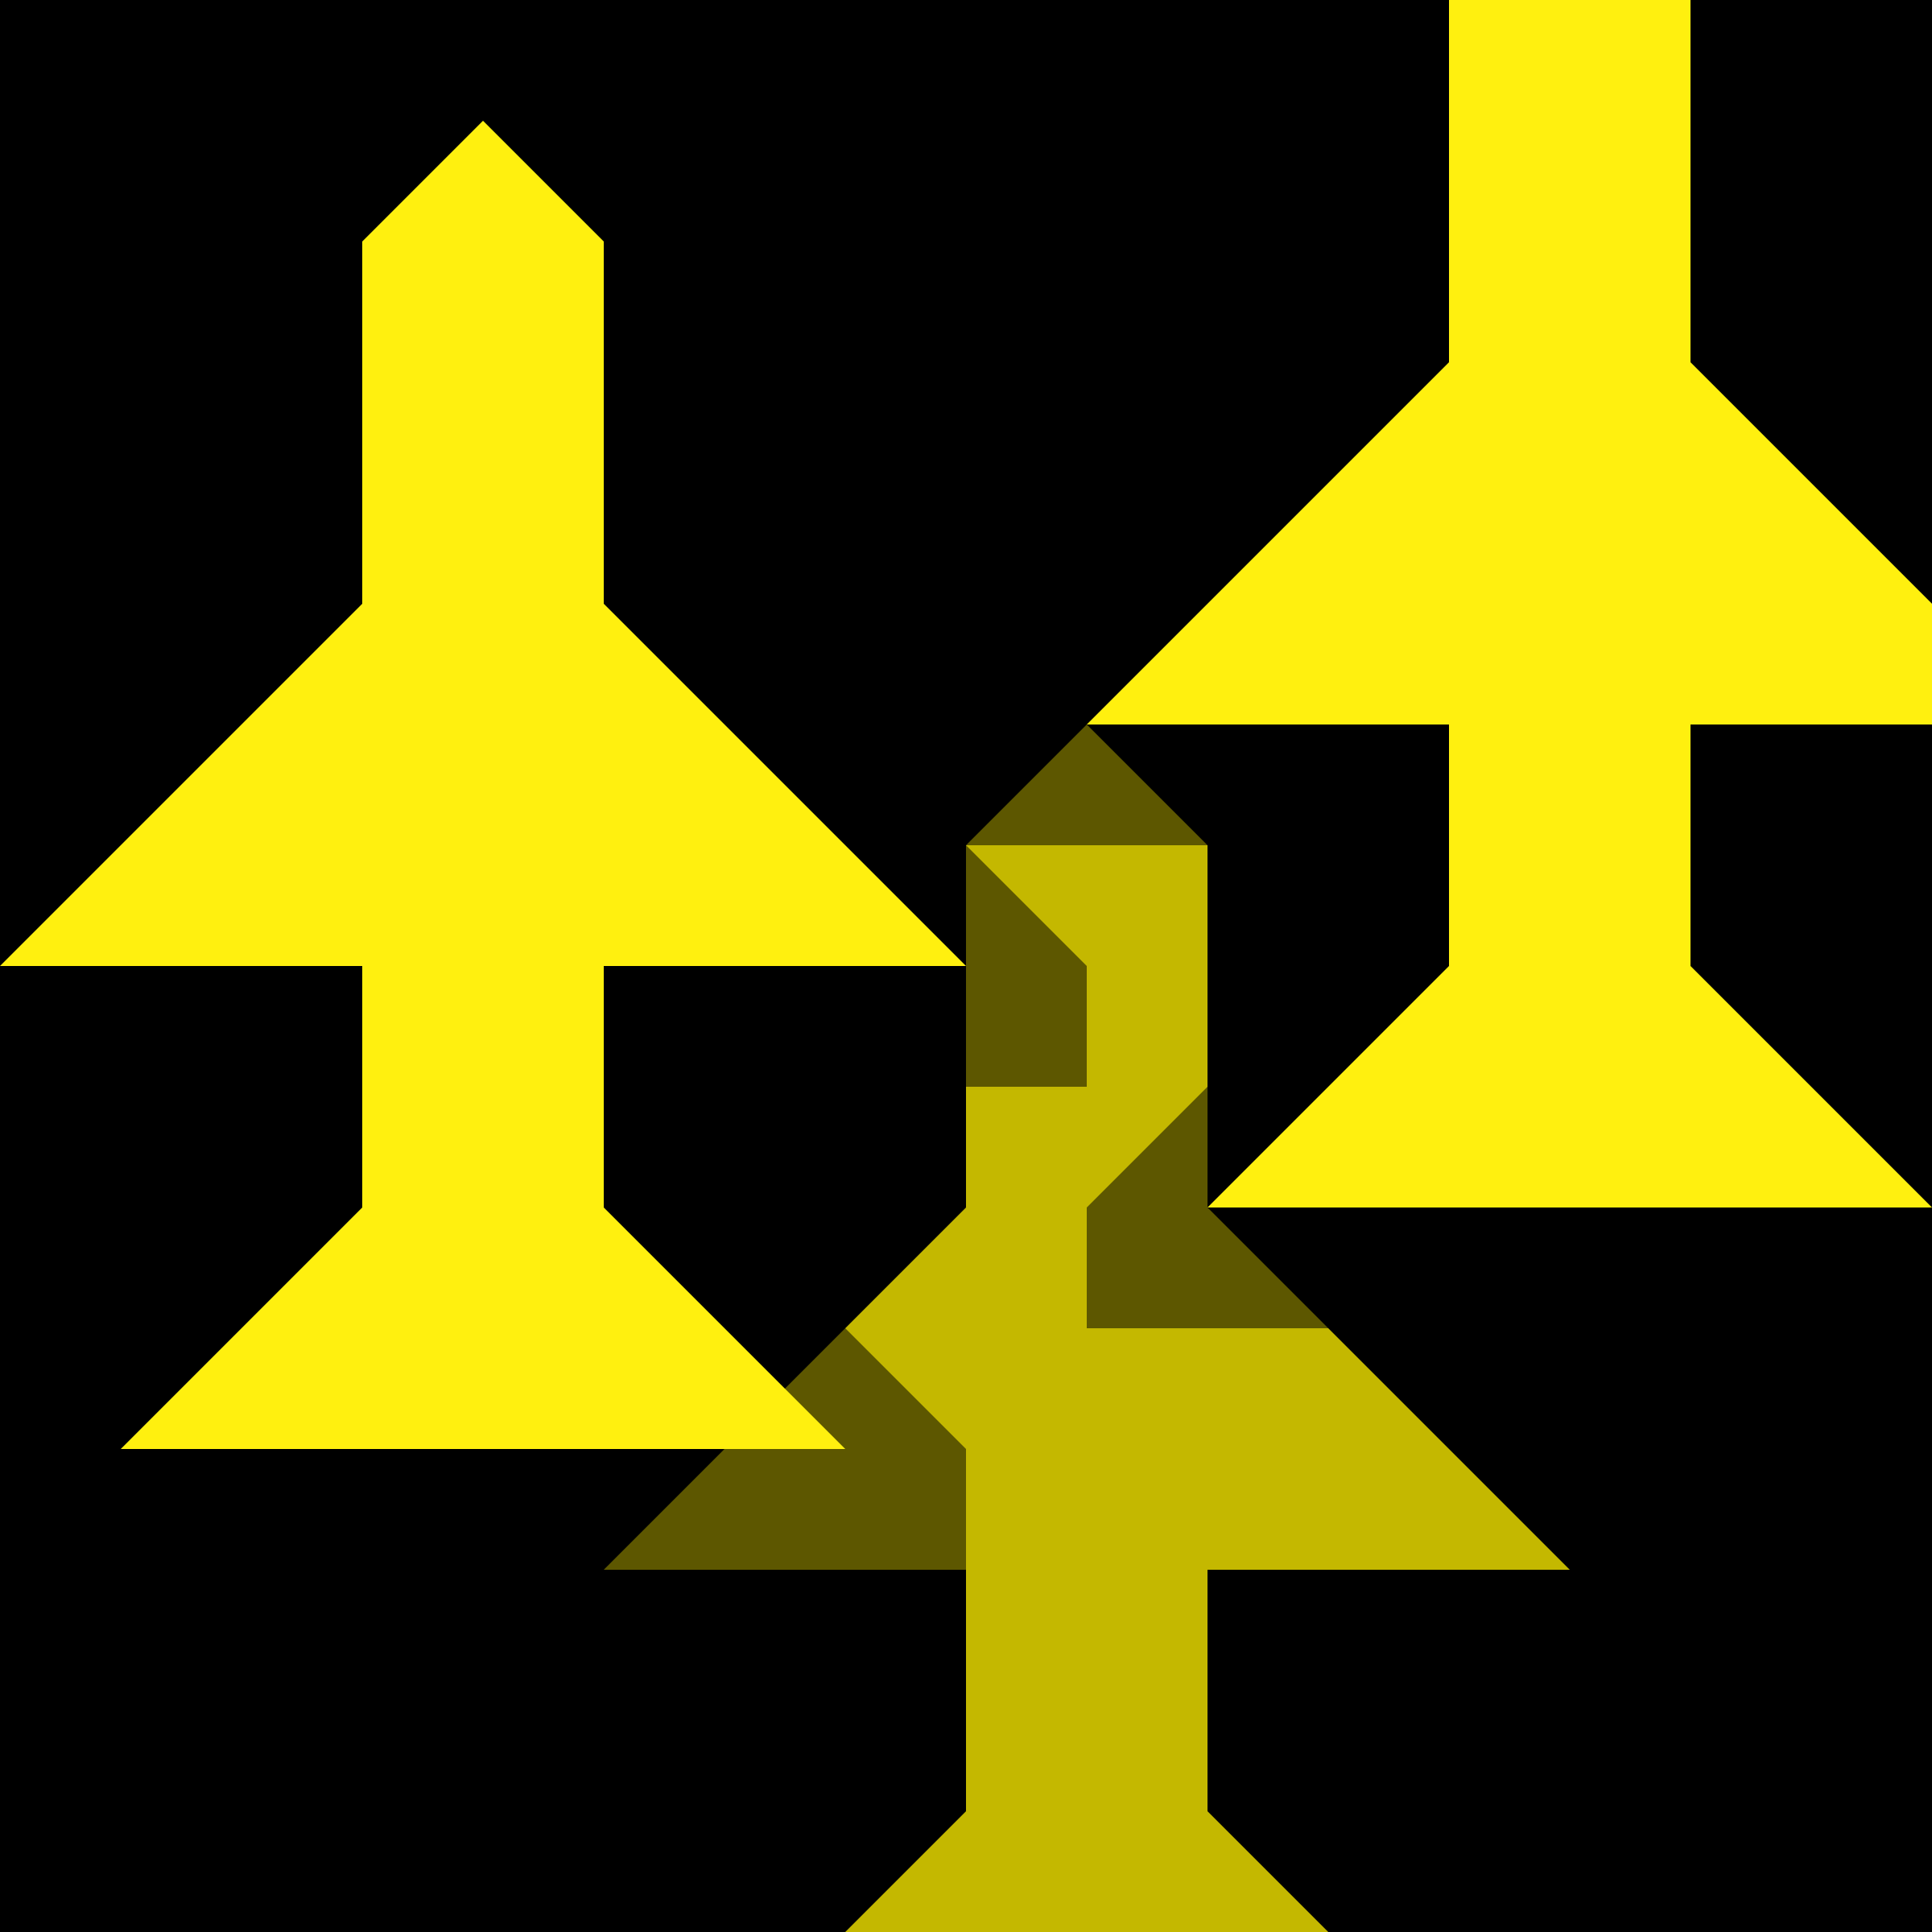 Yellow Planes Flying Over Black Ground 16px Icon by qubodup